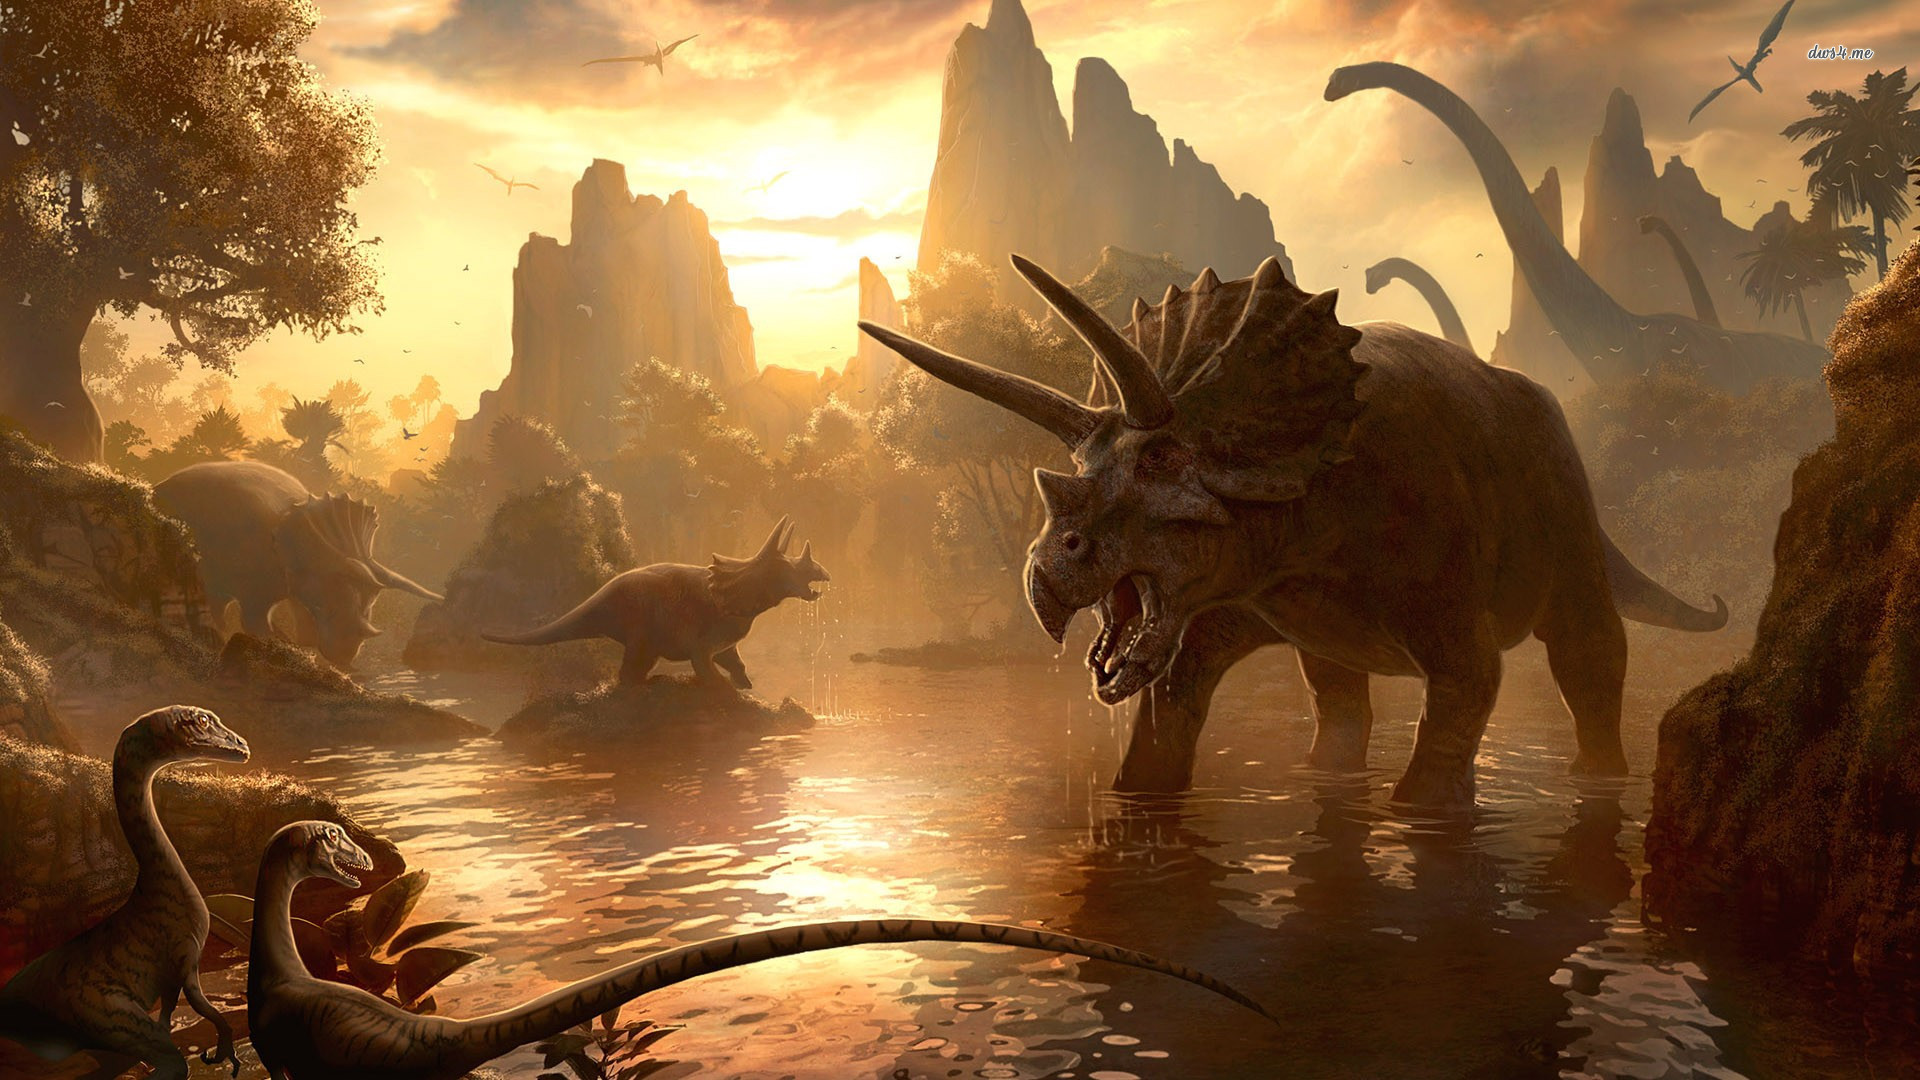 Wallpapers HD 1080P DinosaursDinosaurs, 1080p, Wallpapers, Dinosaurs 1052